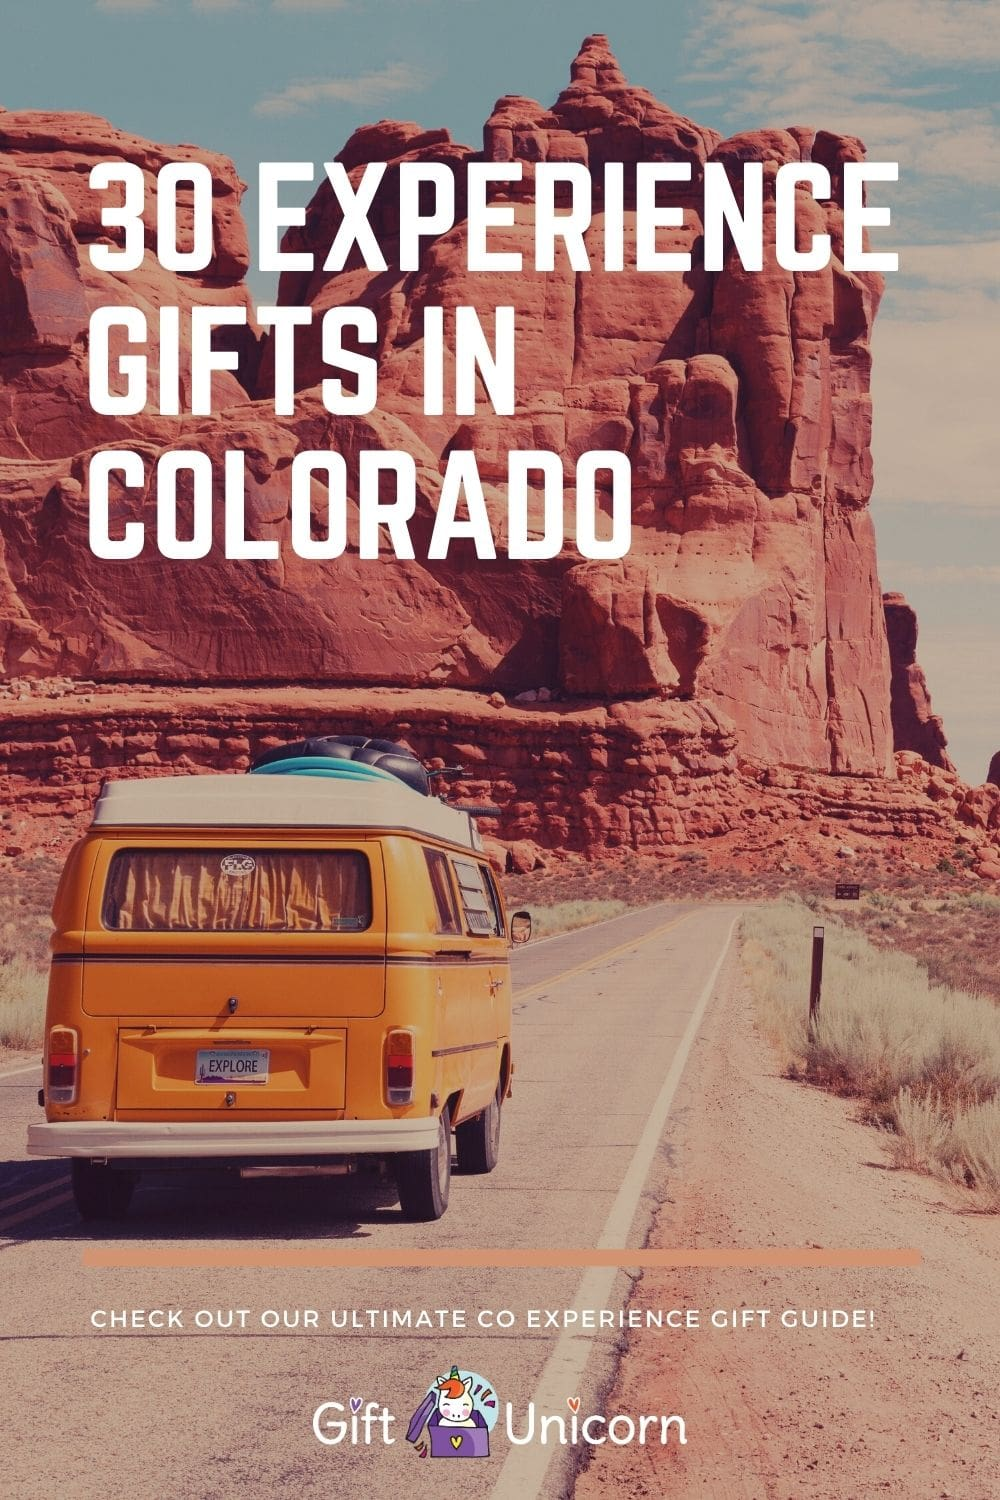 30 experience gifts in colorado